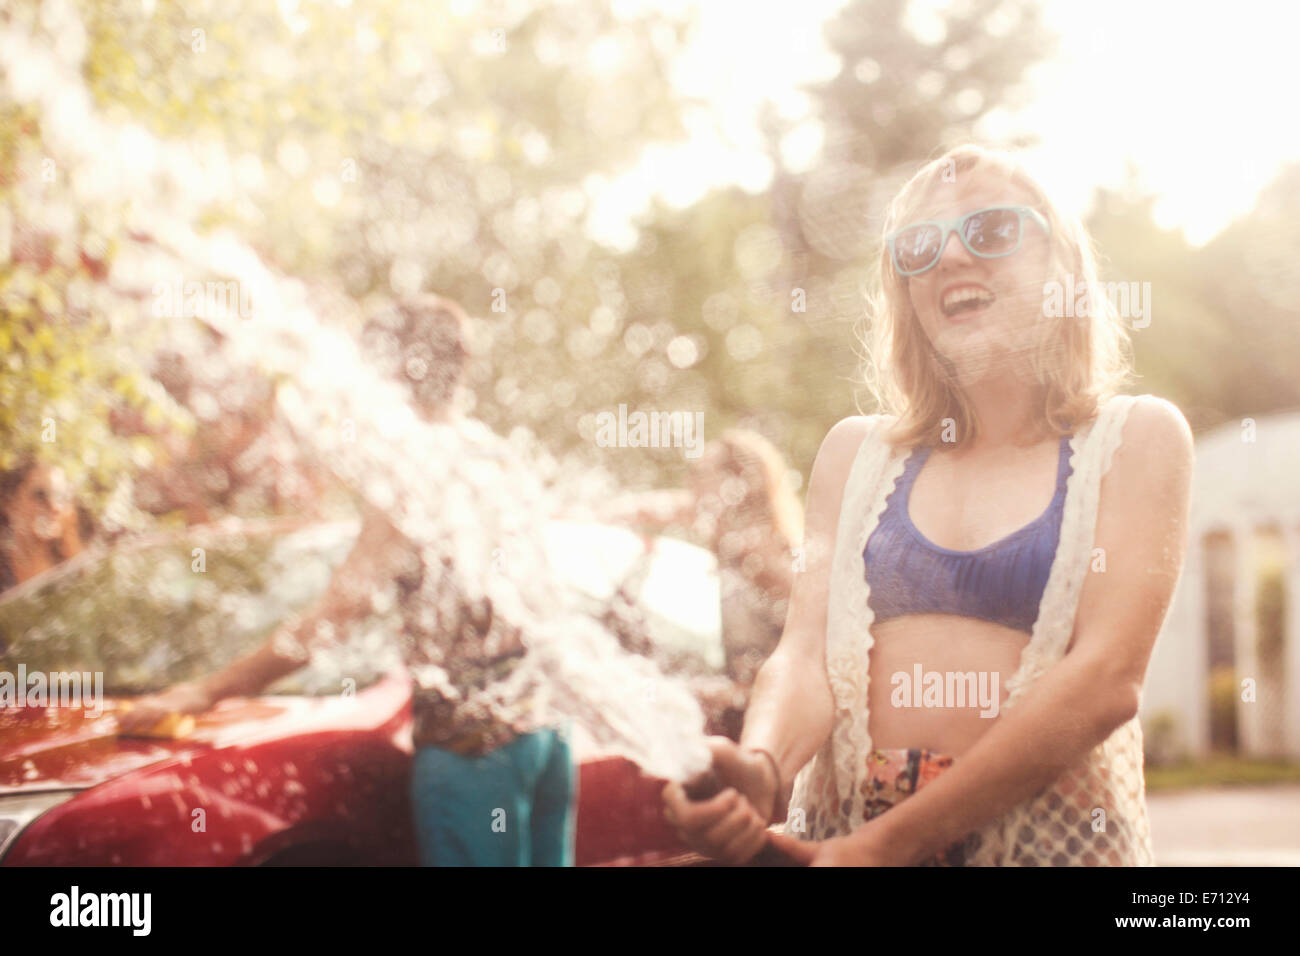 Young woman spraying water from hosepipe Stock Photo